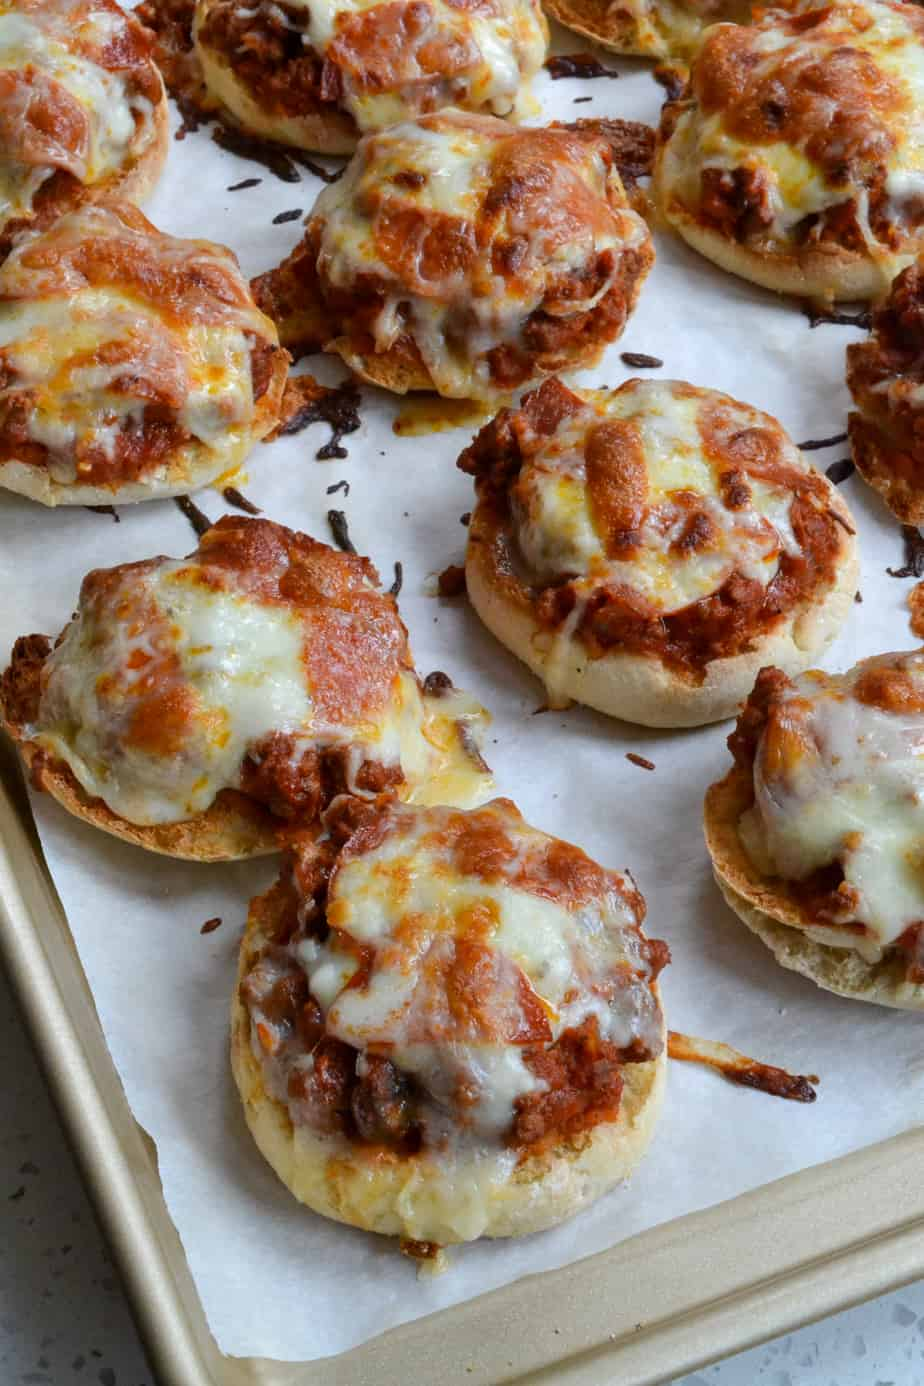 Pizza Burgers with ground beef, pepperoni, mushrooms, and mozzarella.